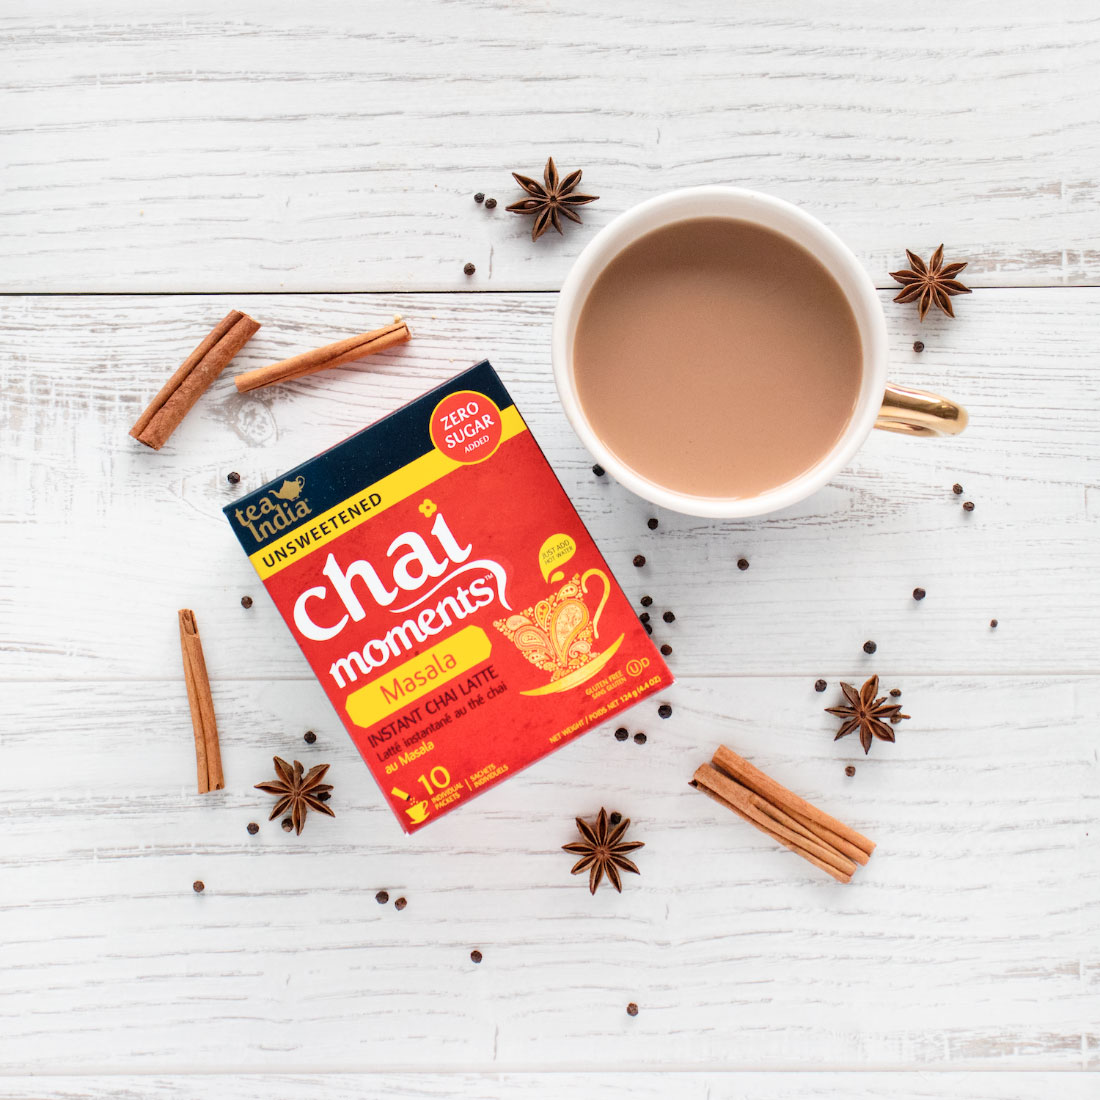 mug and box of Tea India Chai Moments Masala tea with herbs and spices